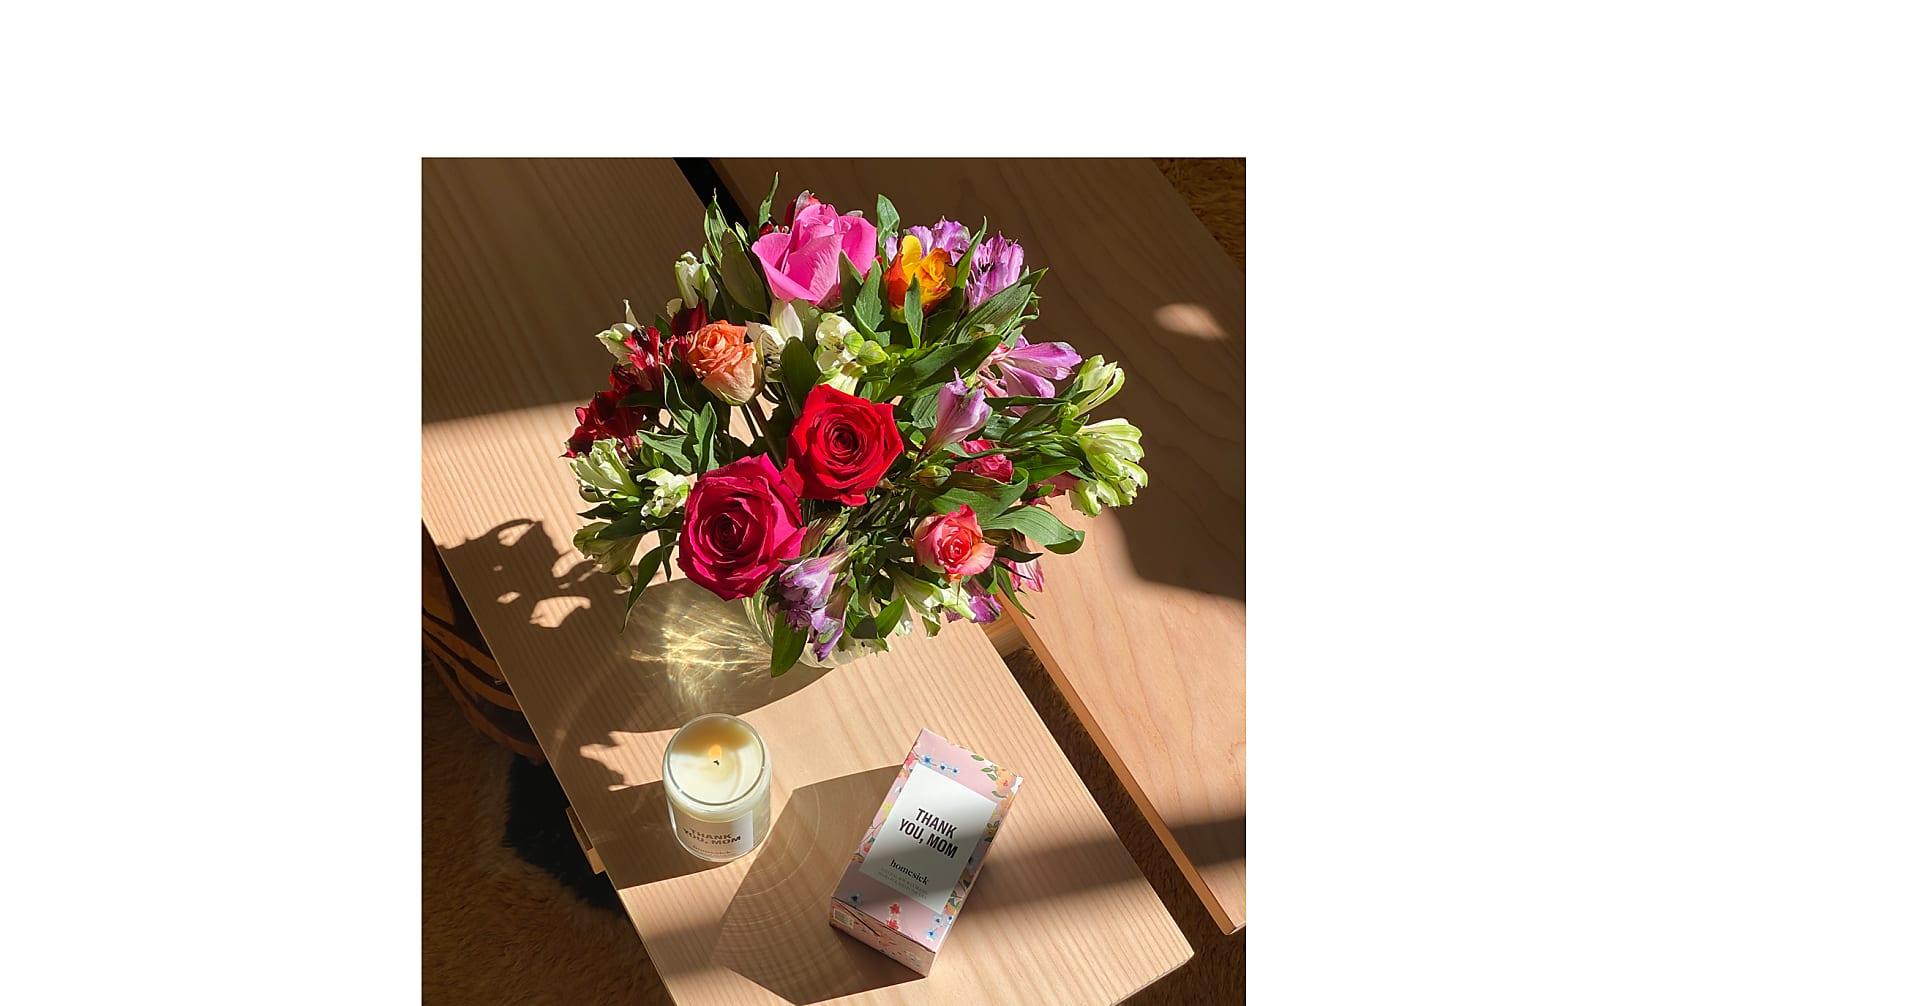 Smiles & Sunshine Bouquet and Homesick Candle